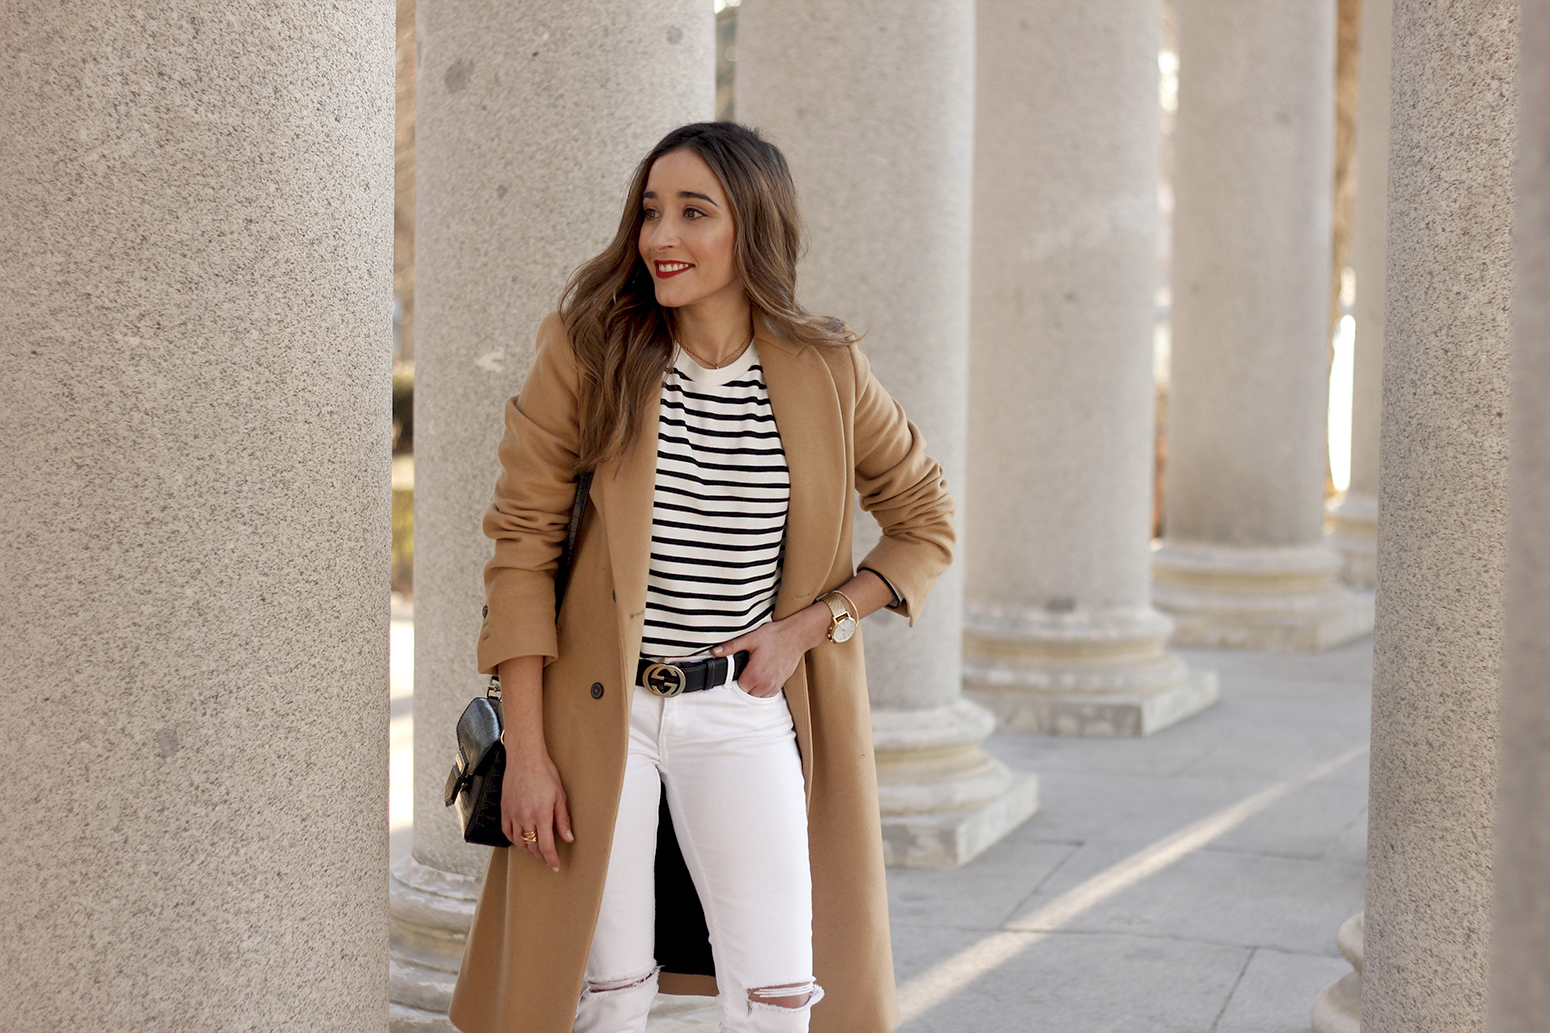 beige coat ripped jeans givenchy bag gucci belt street style outfit 201912